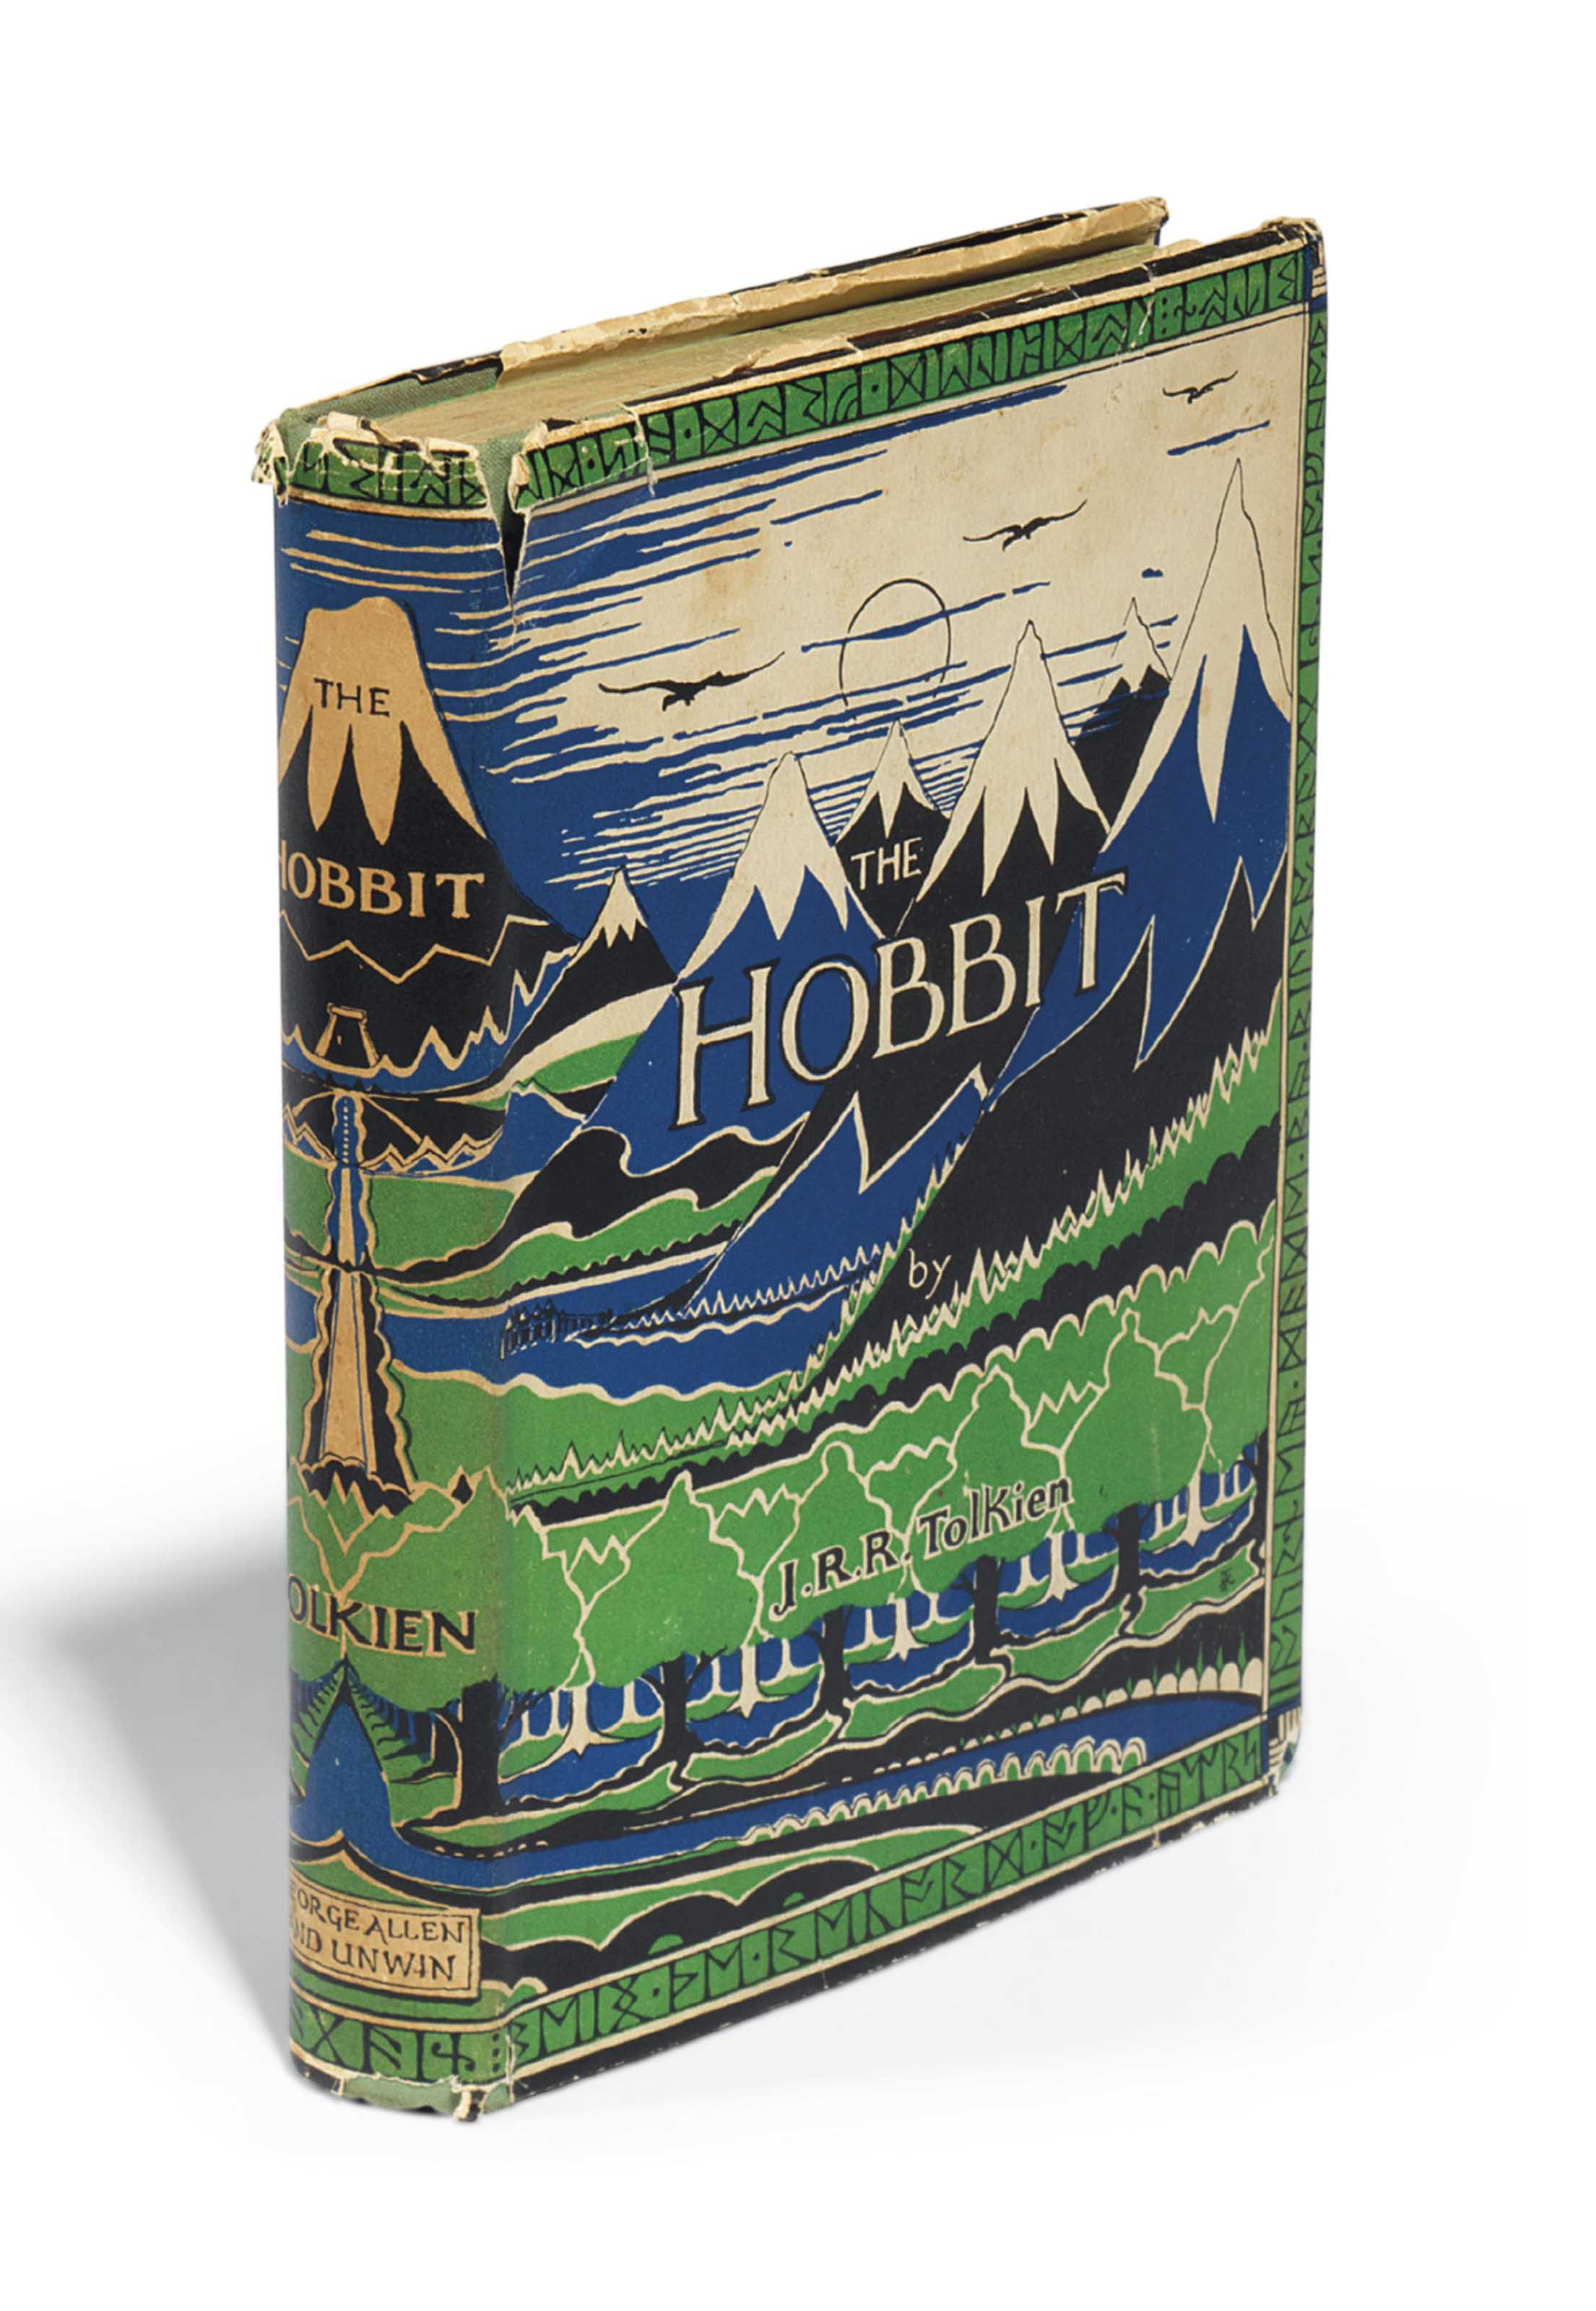 TOLKIEN, John Ronald Reuel (1892-1973). The Hobbit. London: George Allen & Unwin Ltd., 1937.